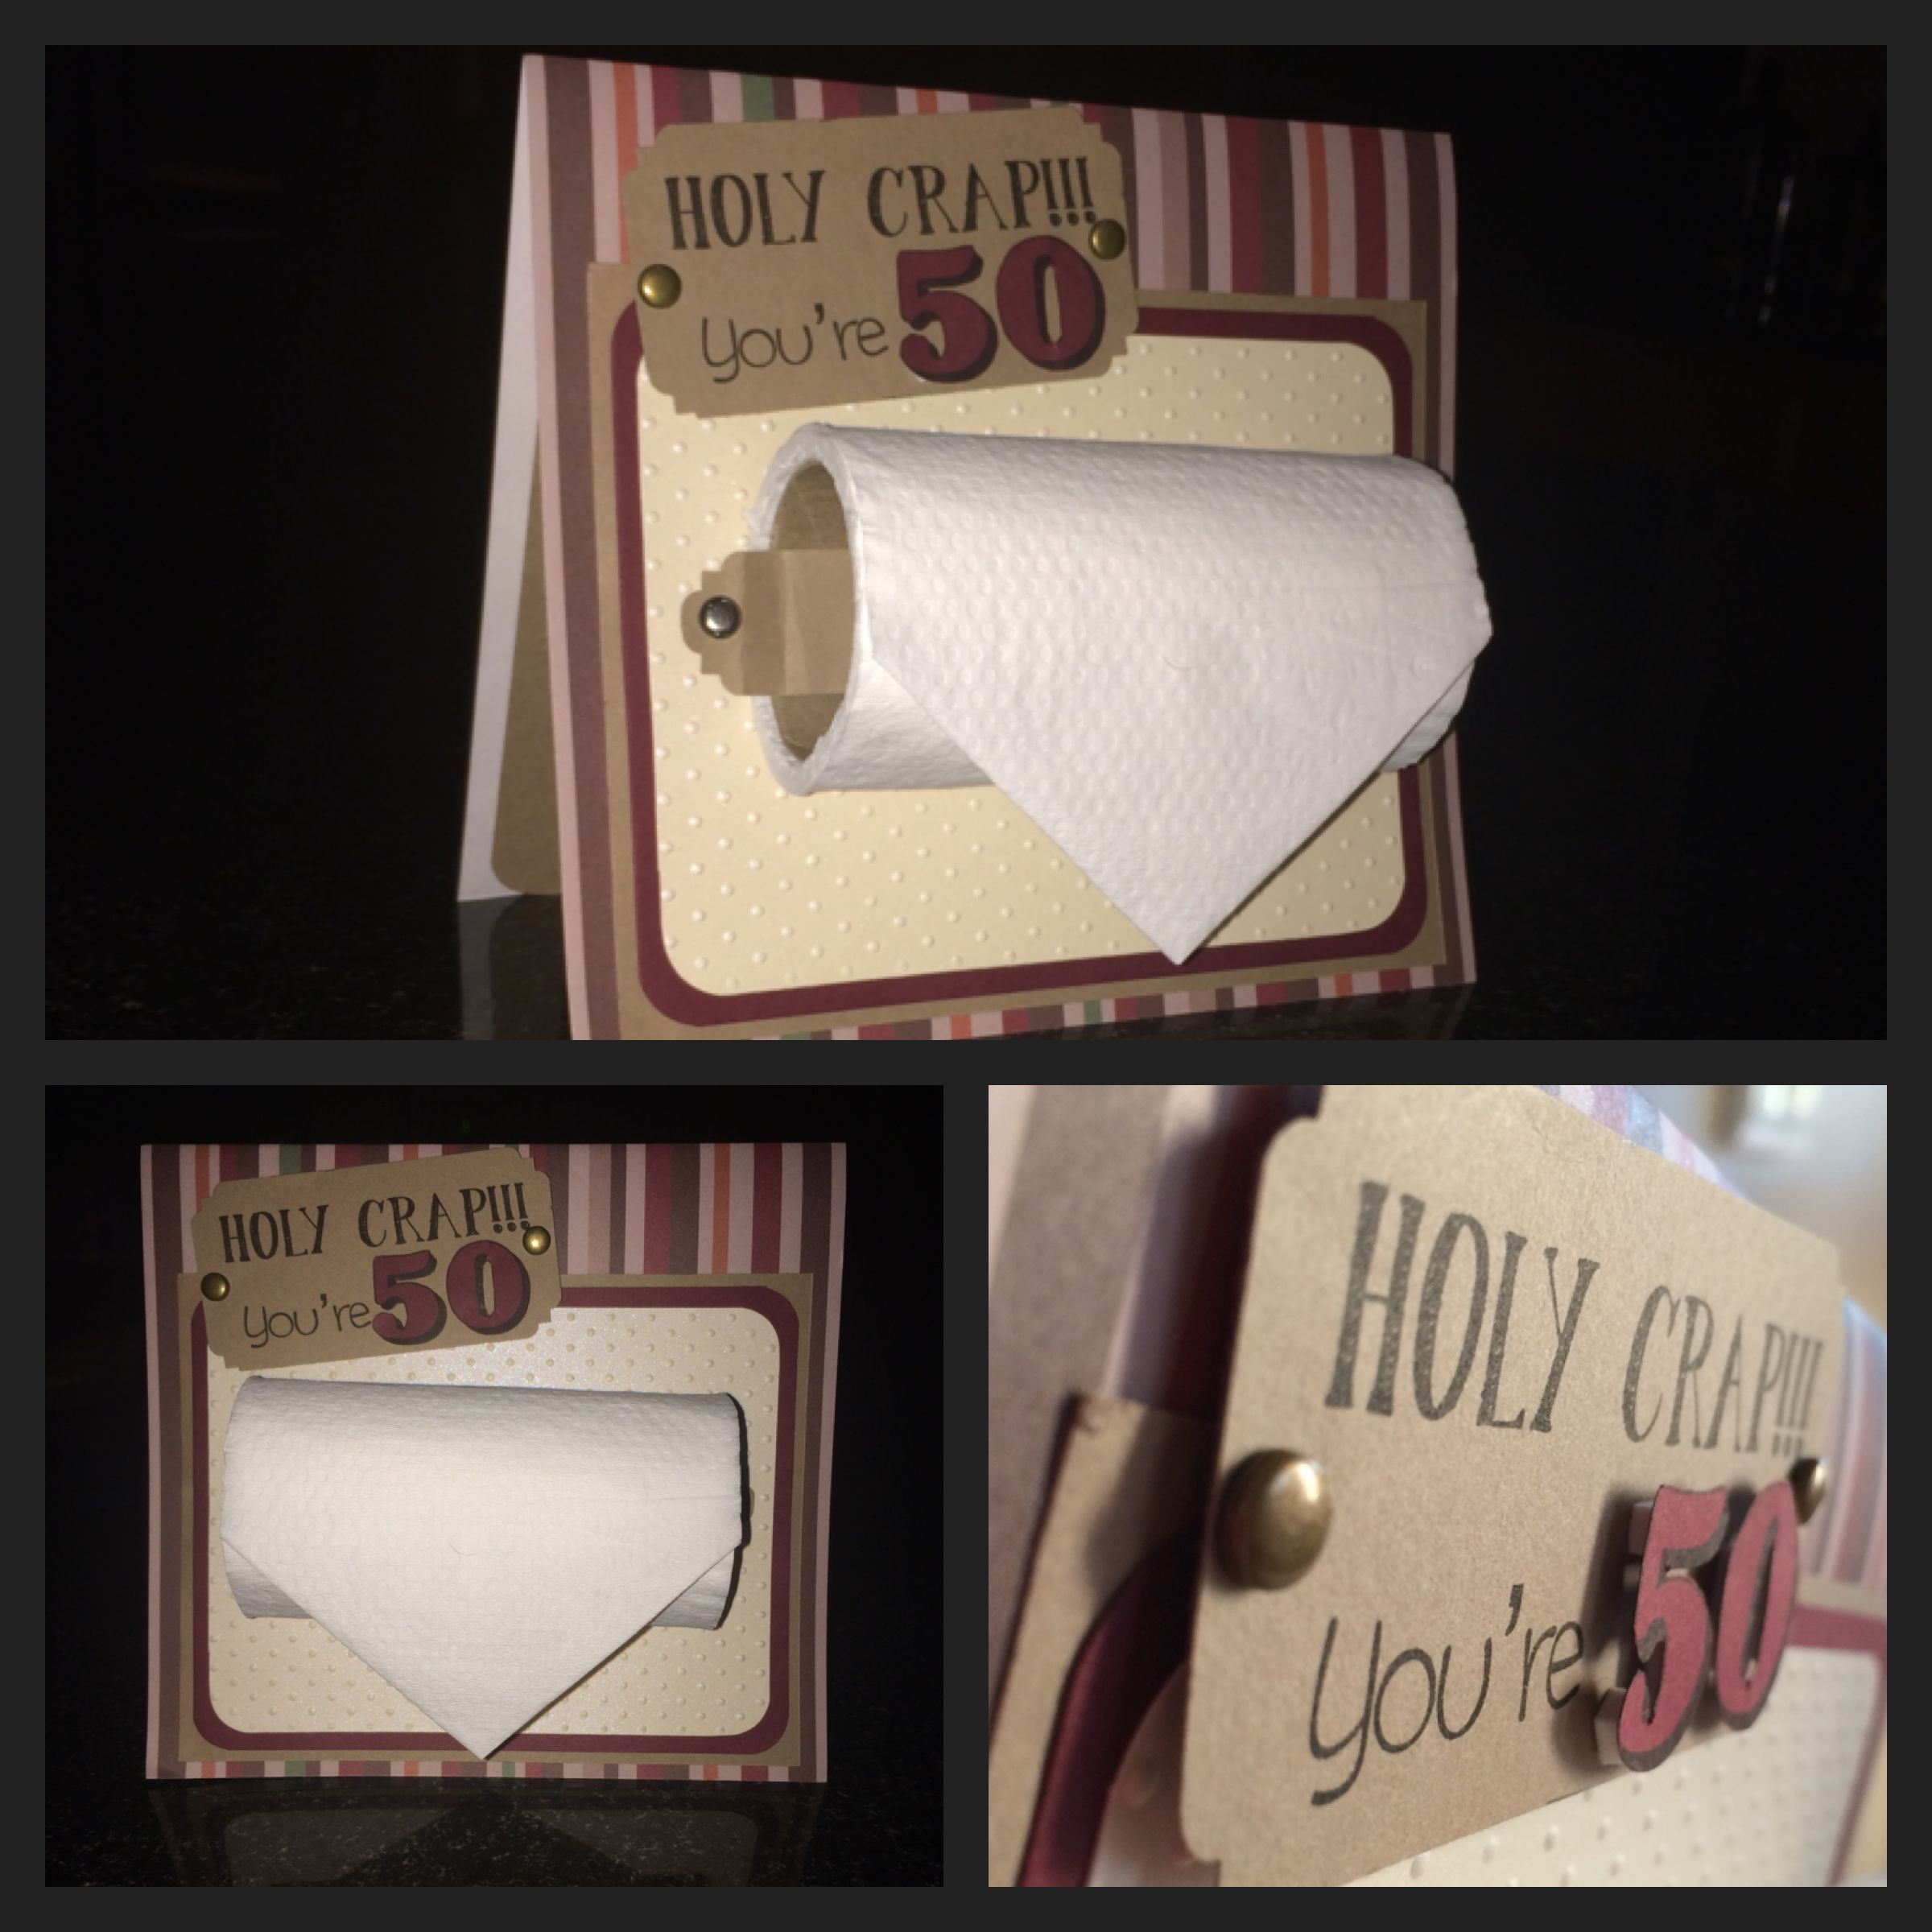 Mens 50th Birthday Cards ~ Holy crap your birthday card personal tried tested ideas pinterest th